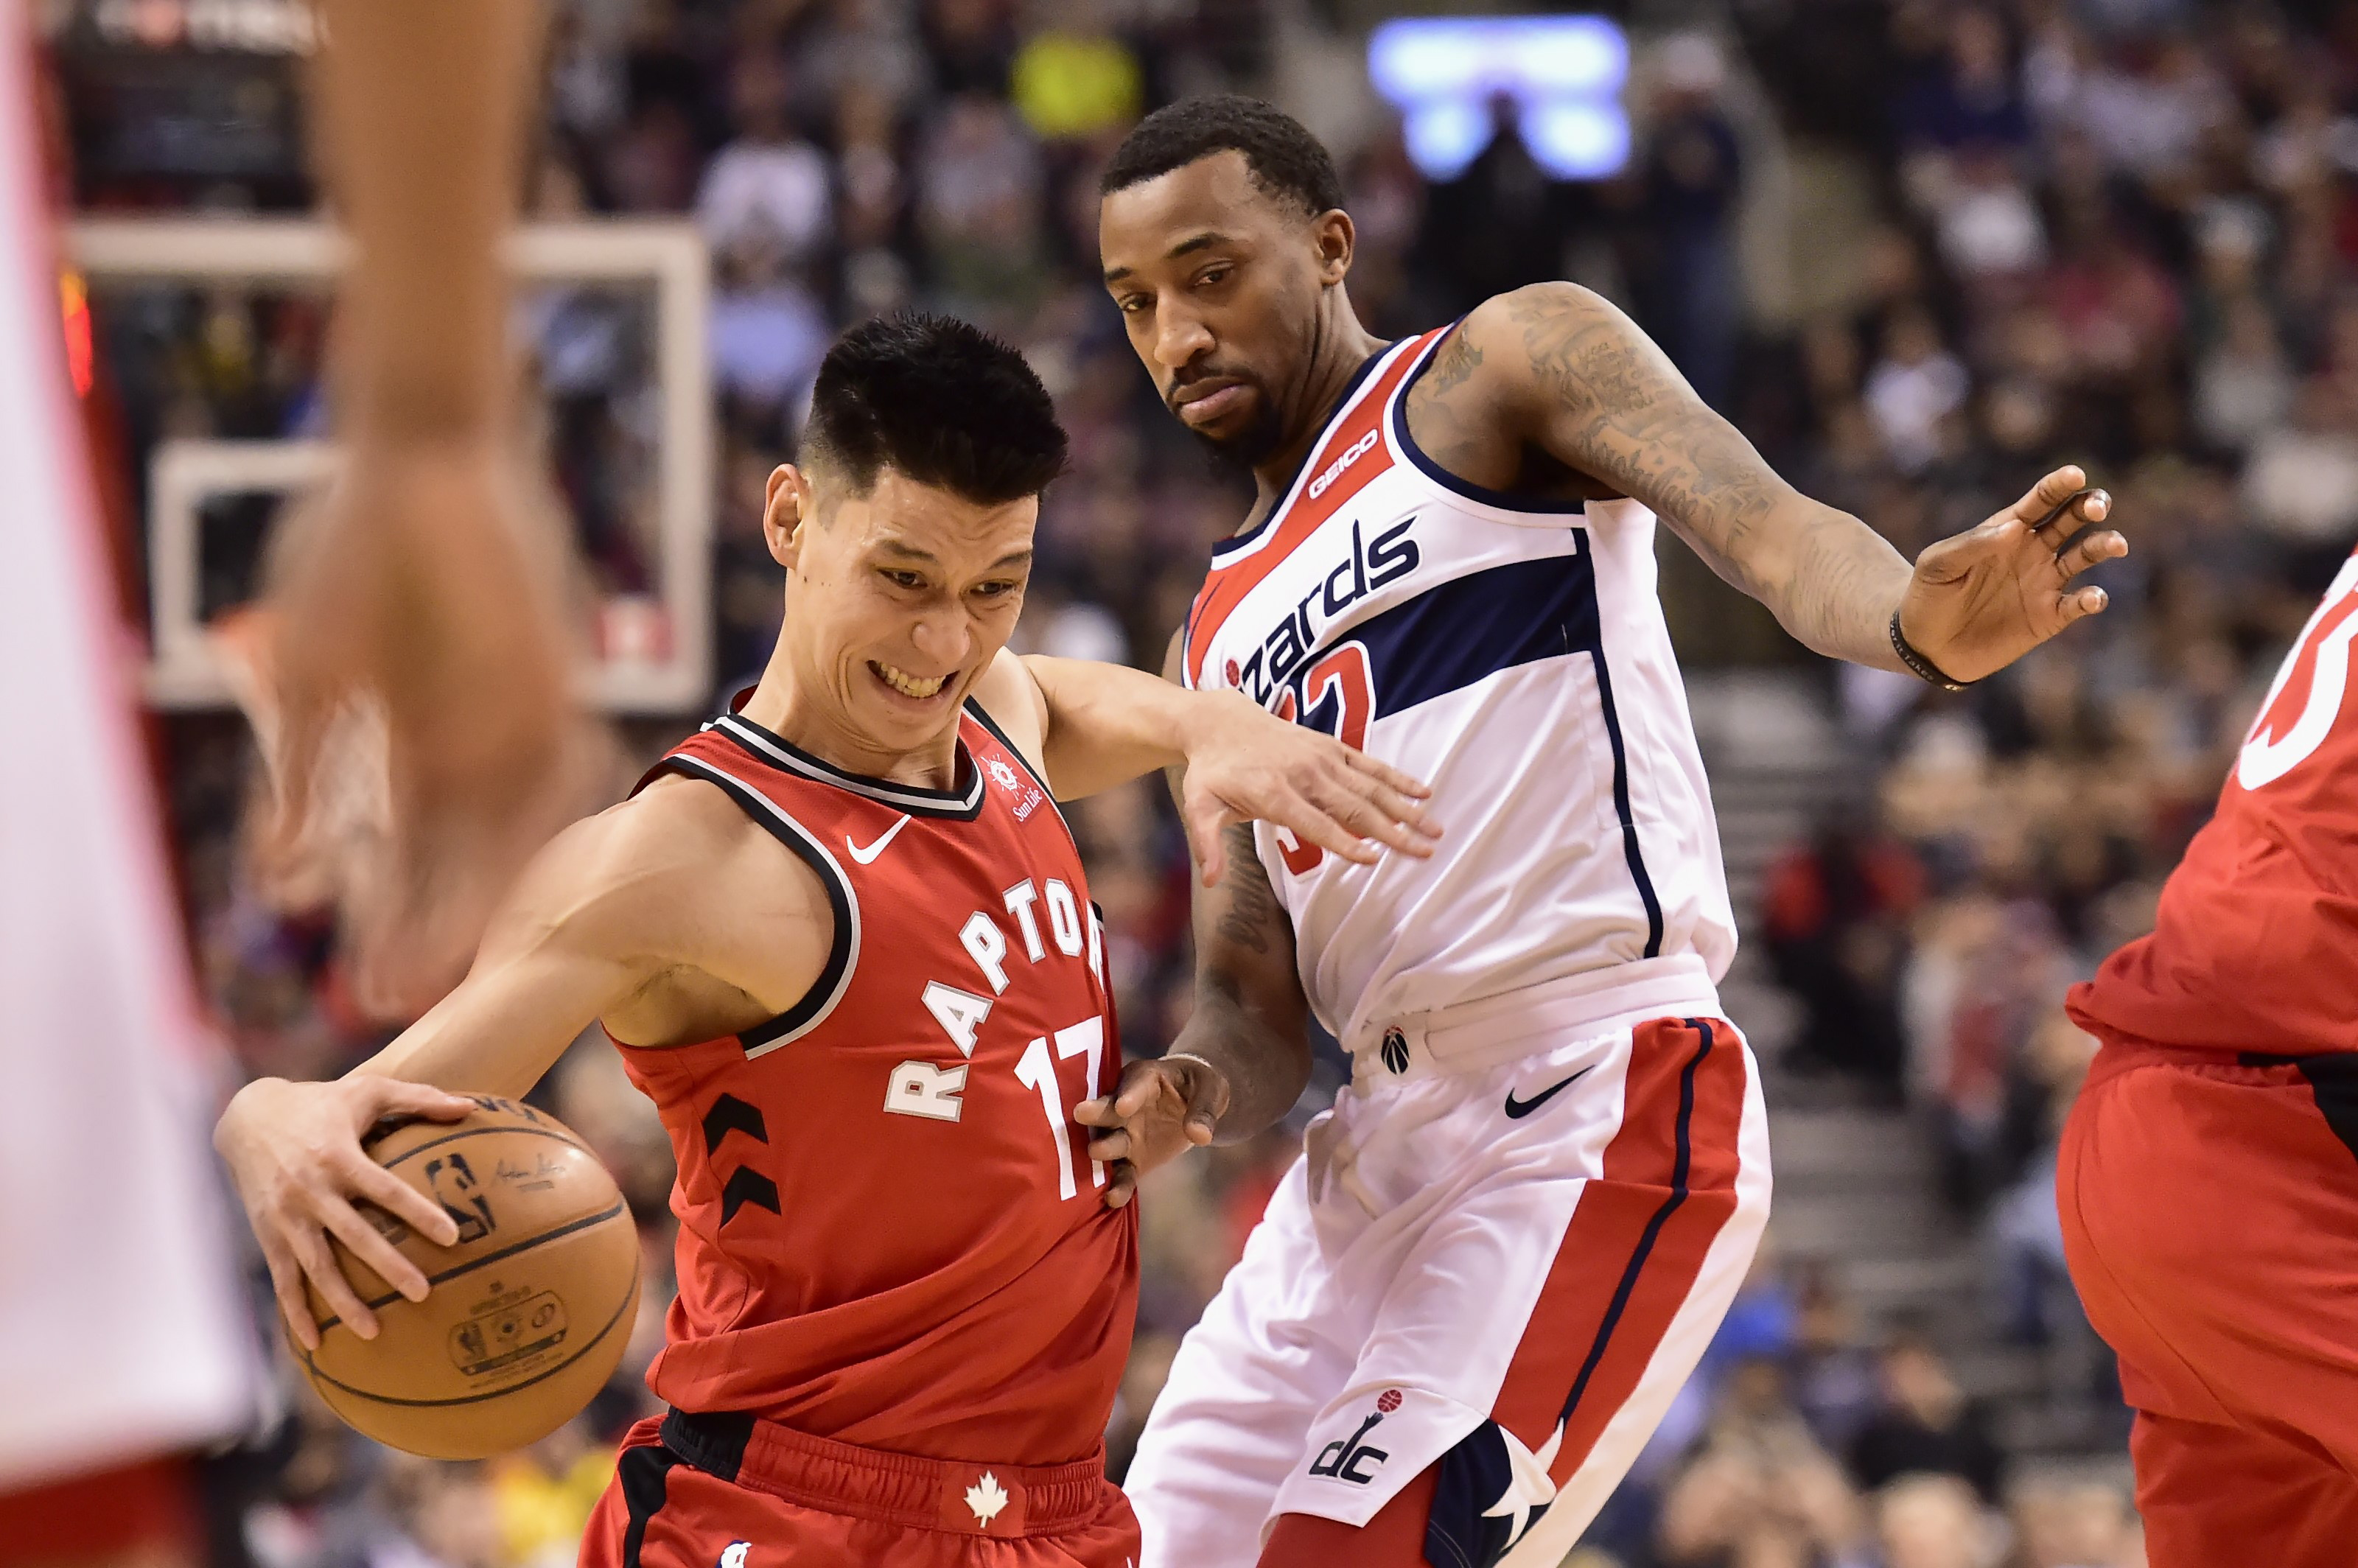 Jeremy Lin Raptors: Lin Takes First Steps On What Could Be Magical Ride With